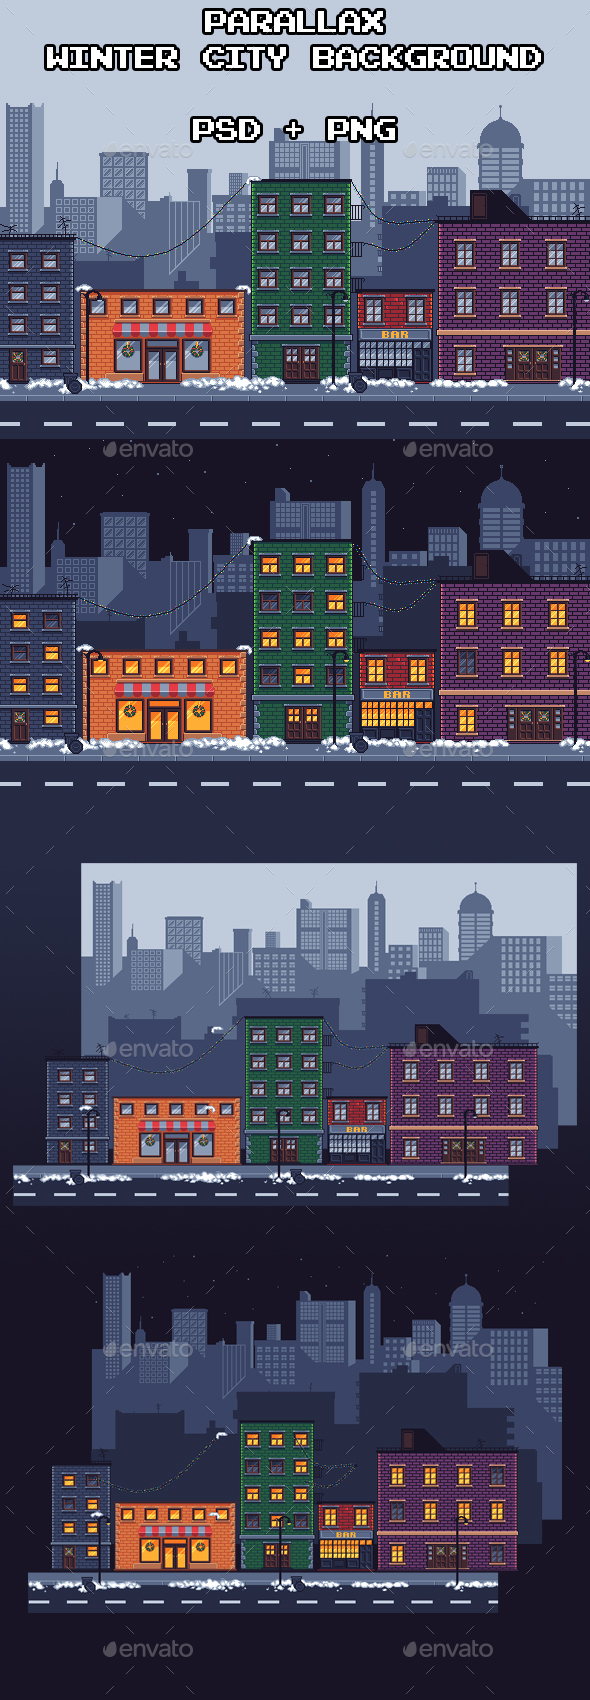 Parallax Winter City Background - Backgrounds Game Assets